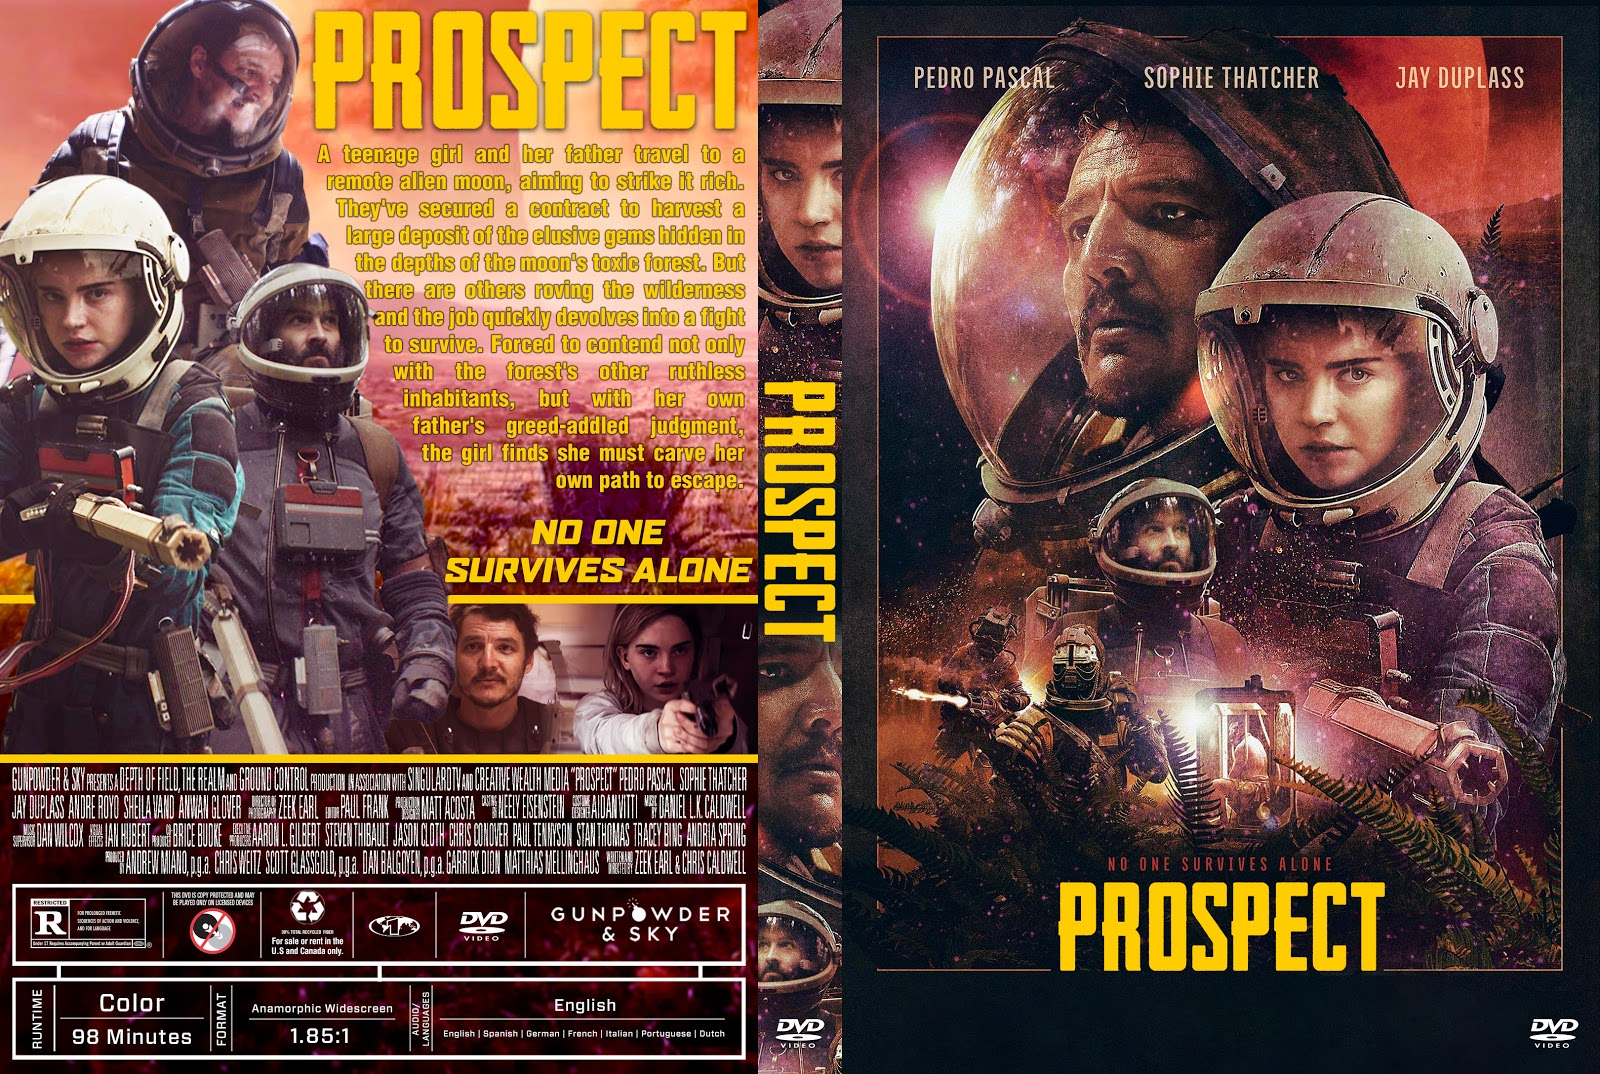 Prospect DVD Cover.jpg (672 KB)